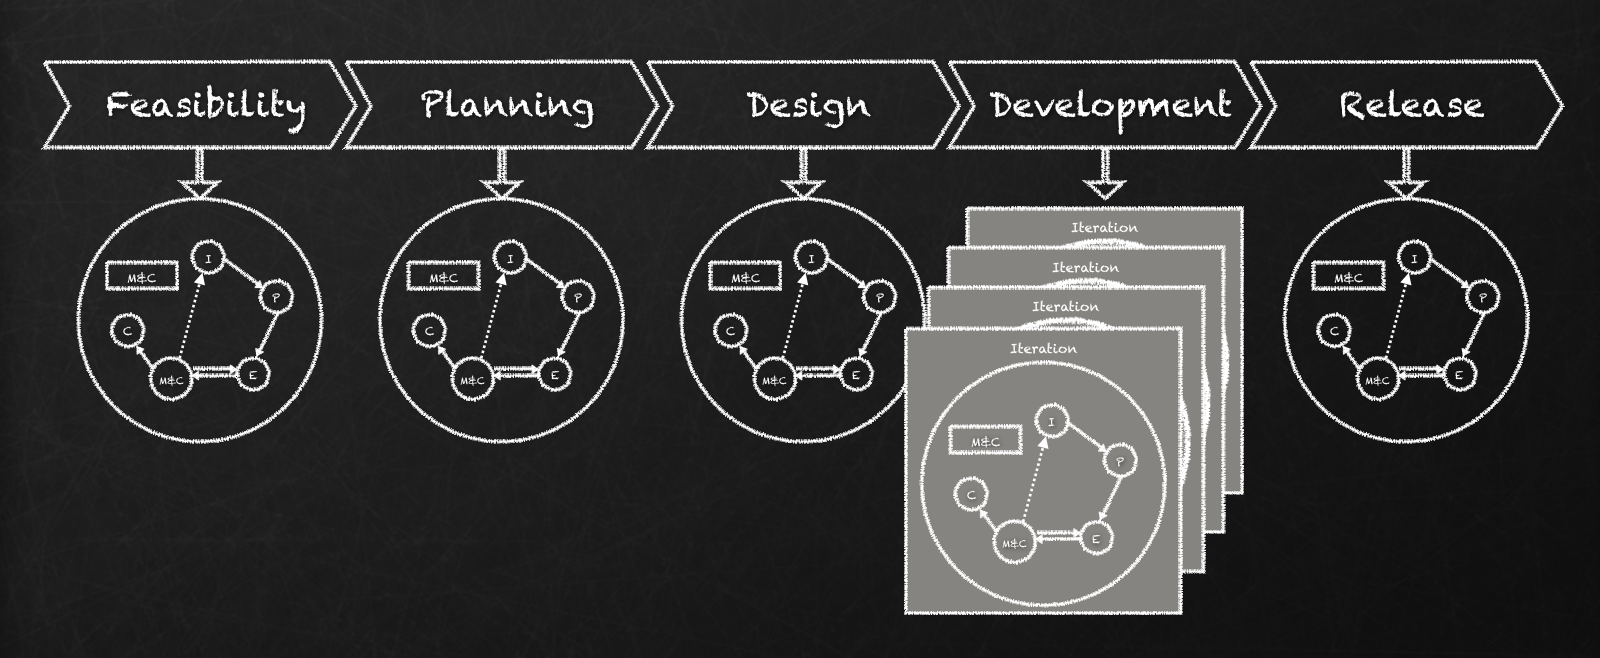 Life Cycle on a large agile project